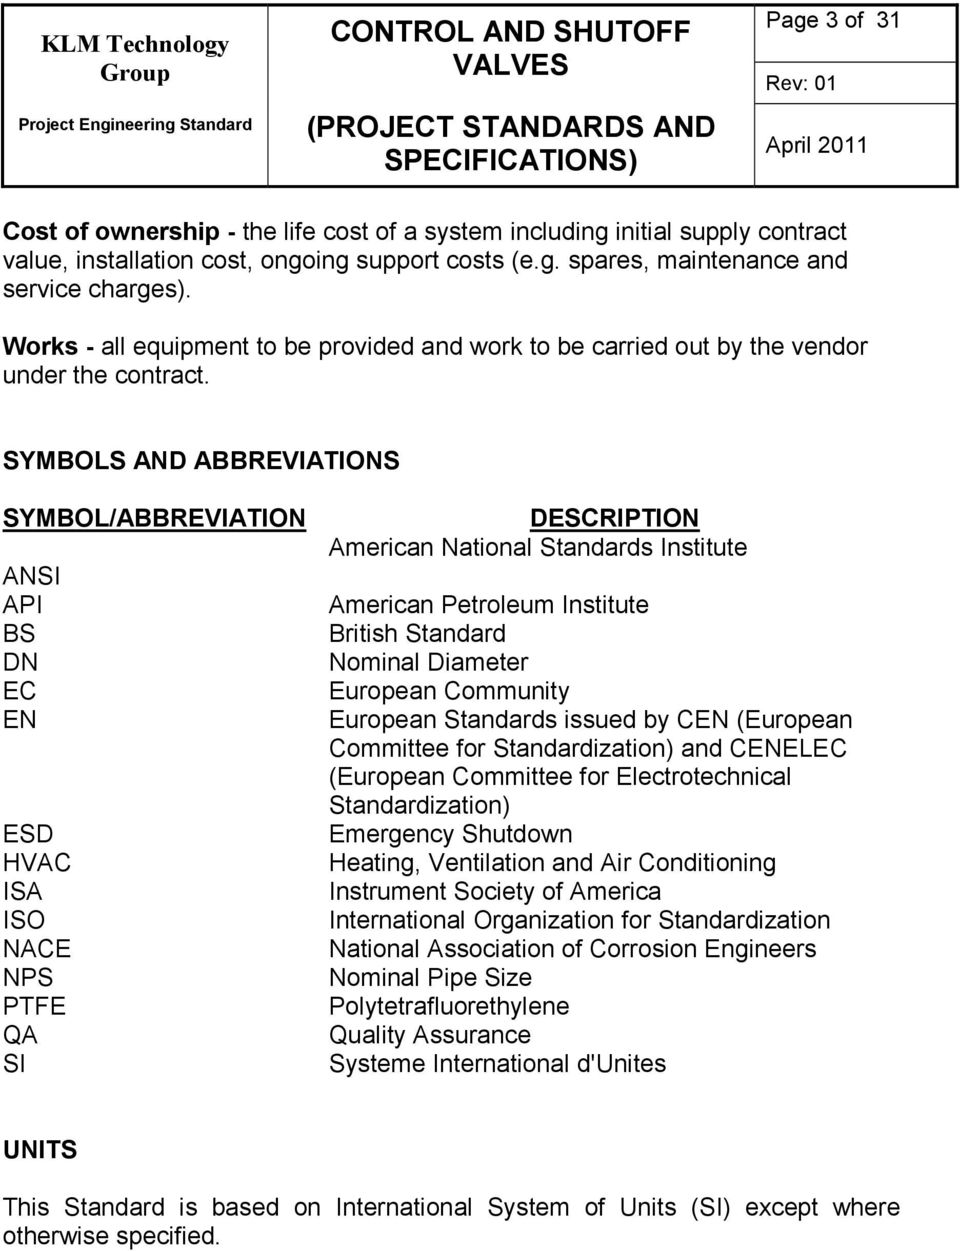 SYMBOLS AND ABBREVIATIONS SYMBOL/ABBREVIATION ANSI API BS DN EC EN ESD HVAC ISA ISO NACE NPS PTFE QA SI DESCRIPTION American National Standards Institute American Petroleum Institute British Standard